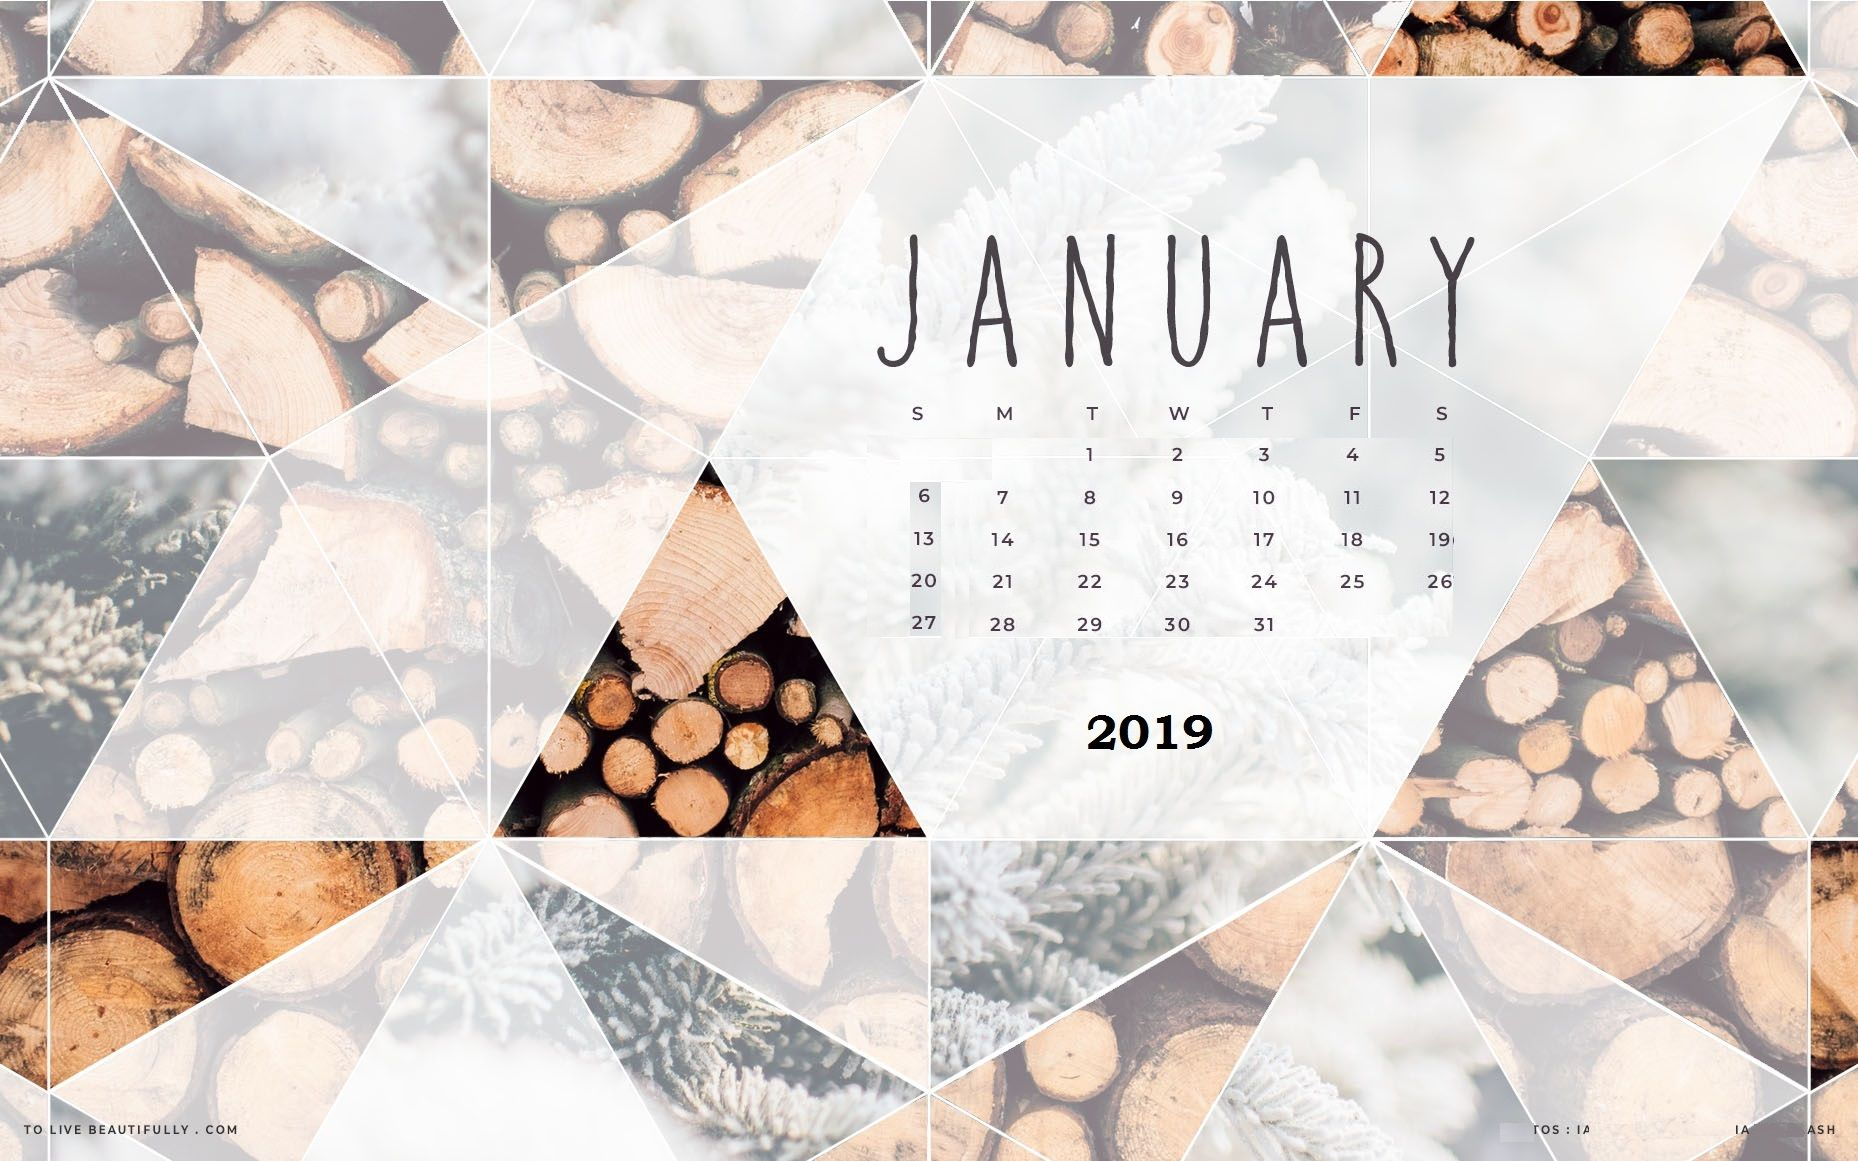 Jan 2019 HD Wallpaper with Calendar desktop wallpaper in 2019 1858x1161